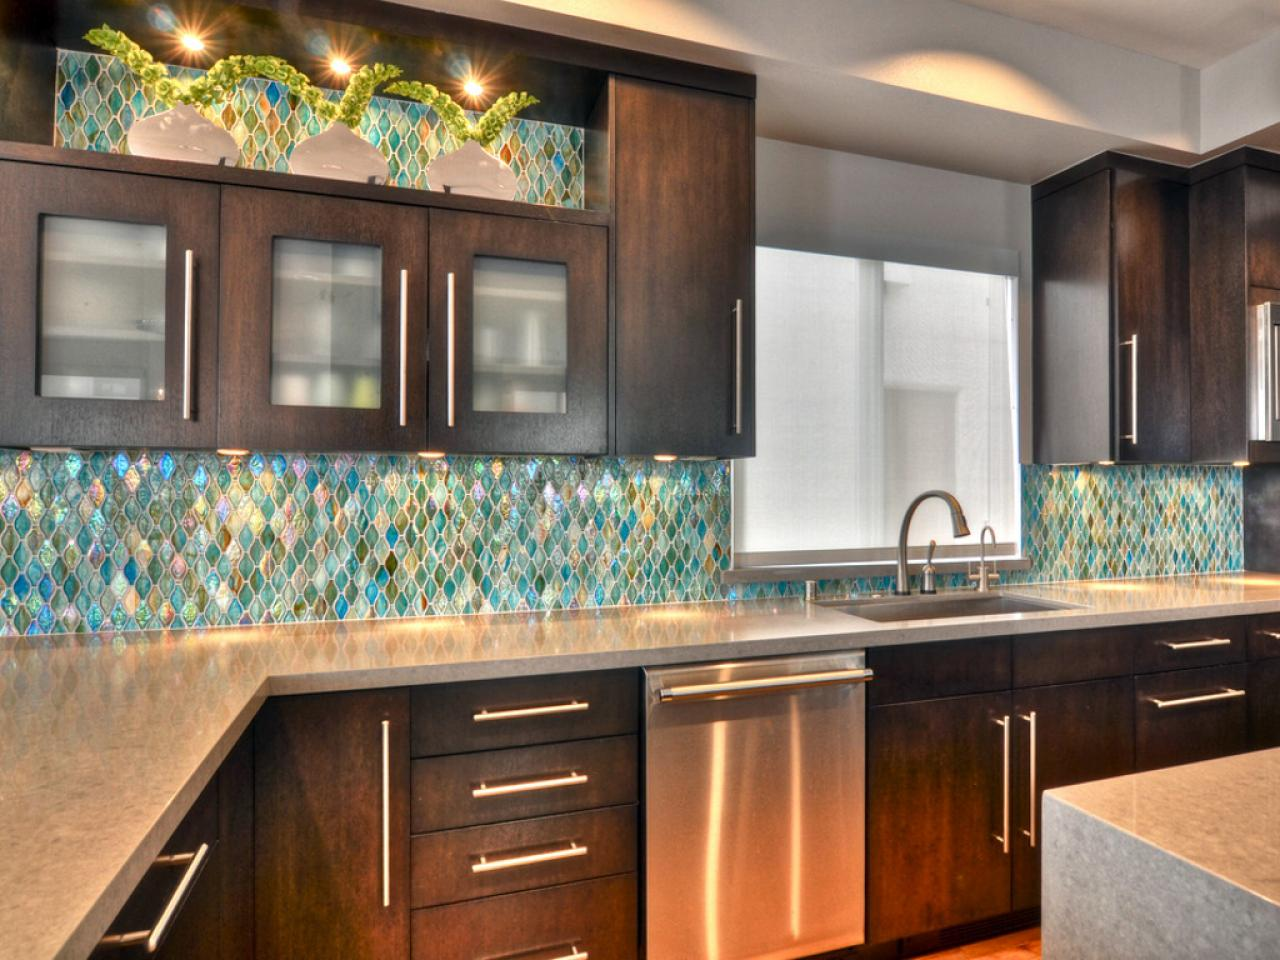 kitchen-backsplash-glass_4x3-jpg-rend-hgtvcom-1280-960